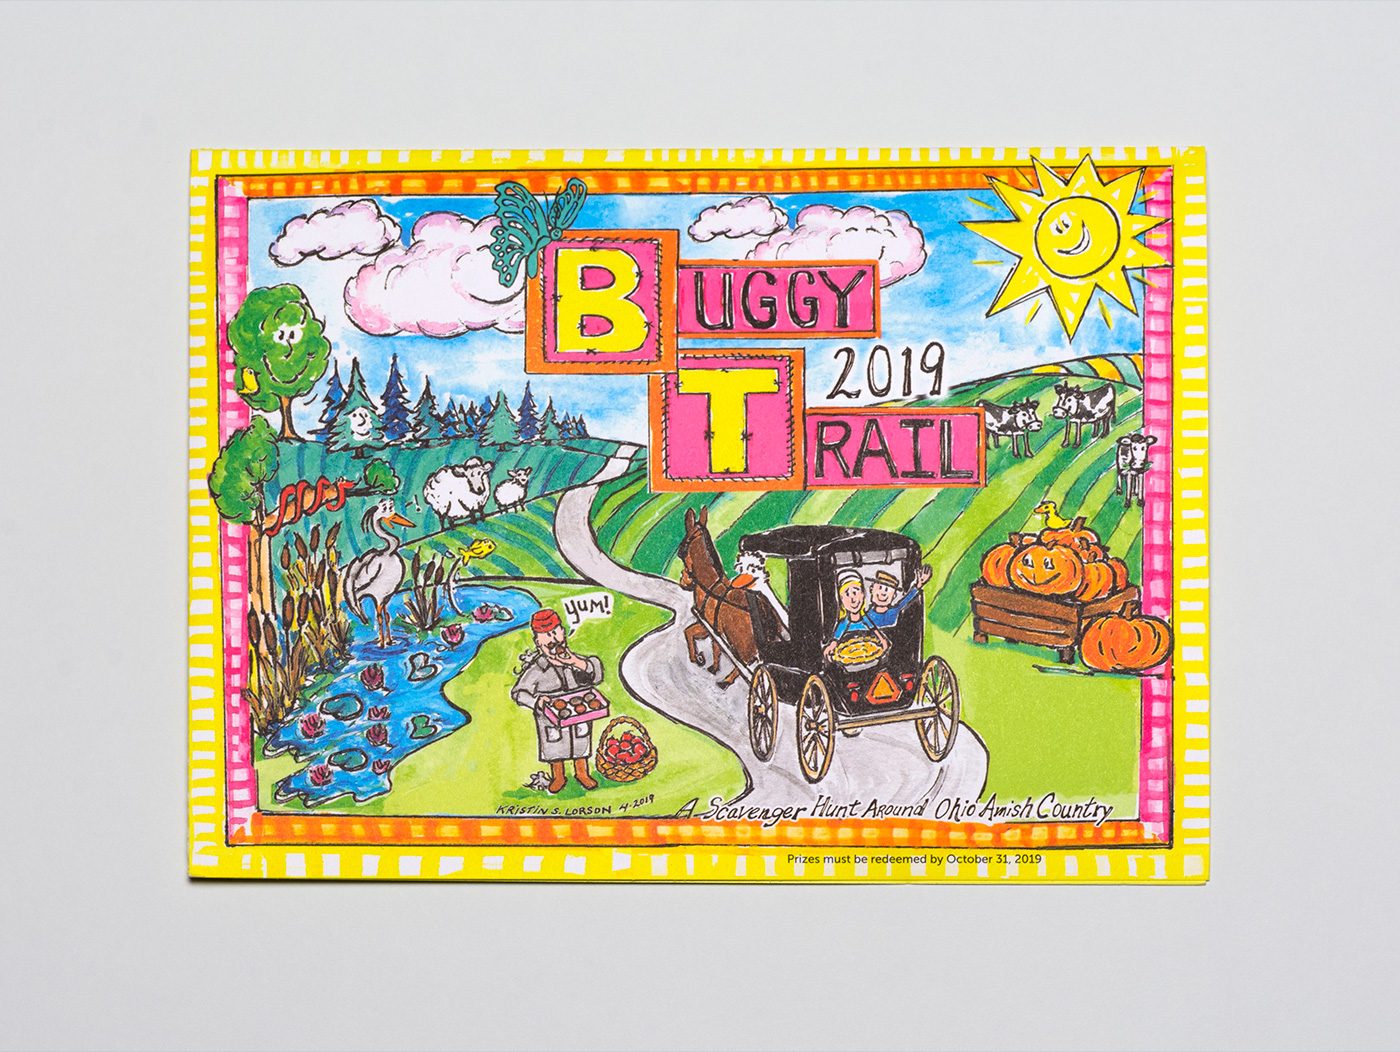 Buggy Trail 2019